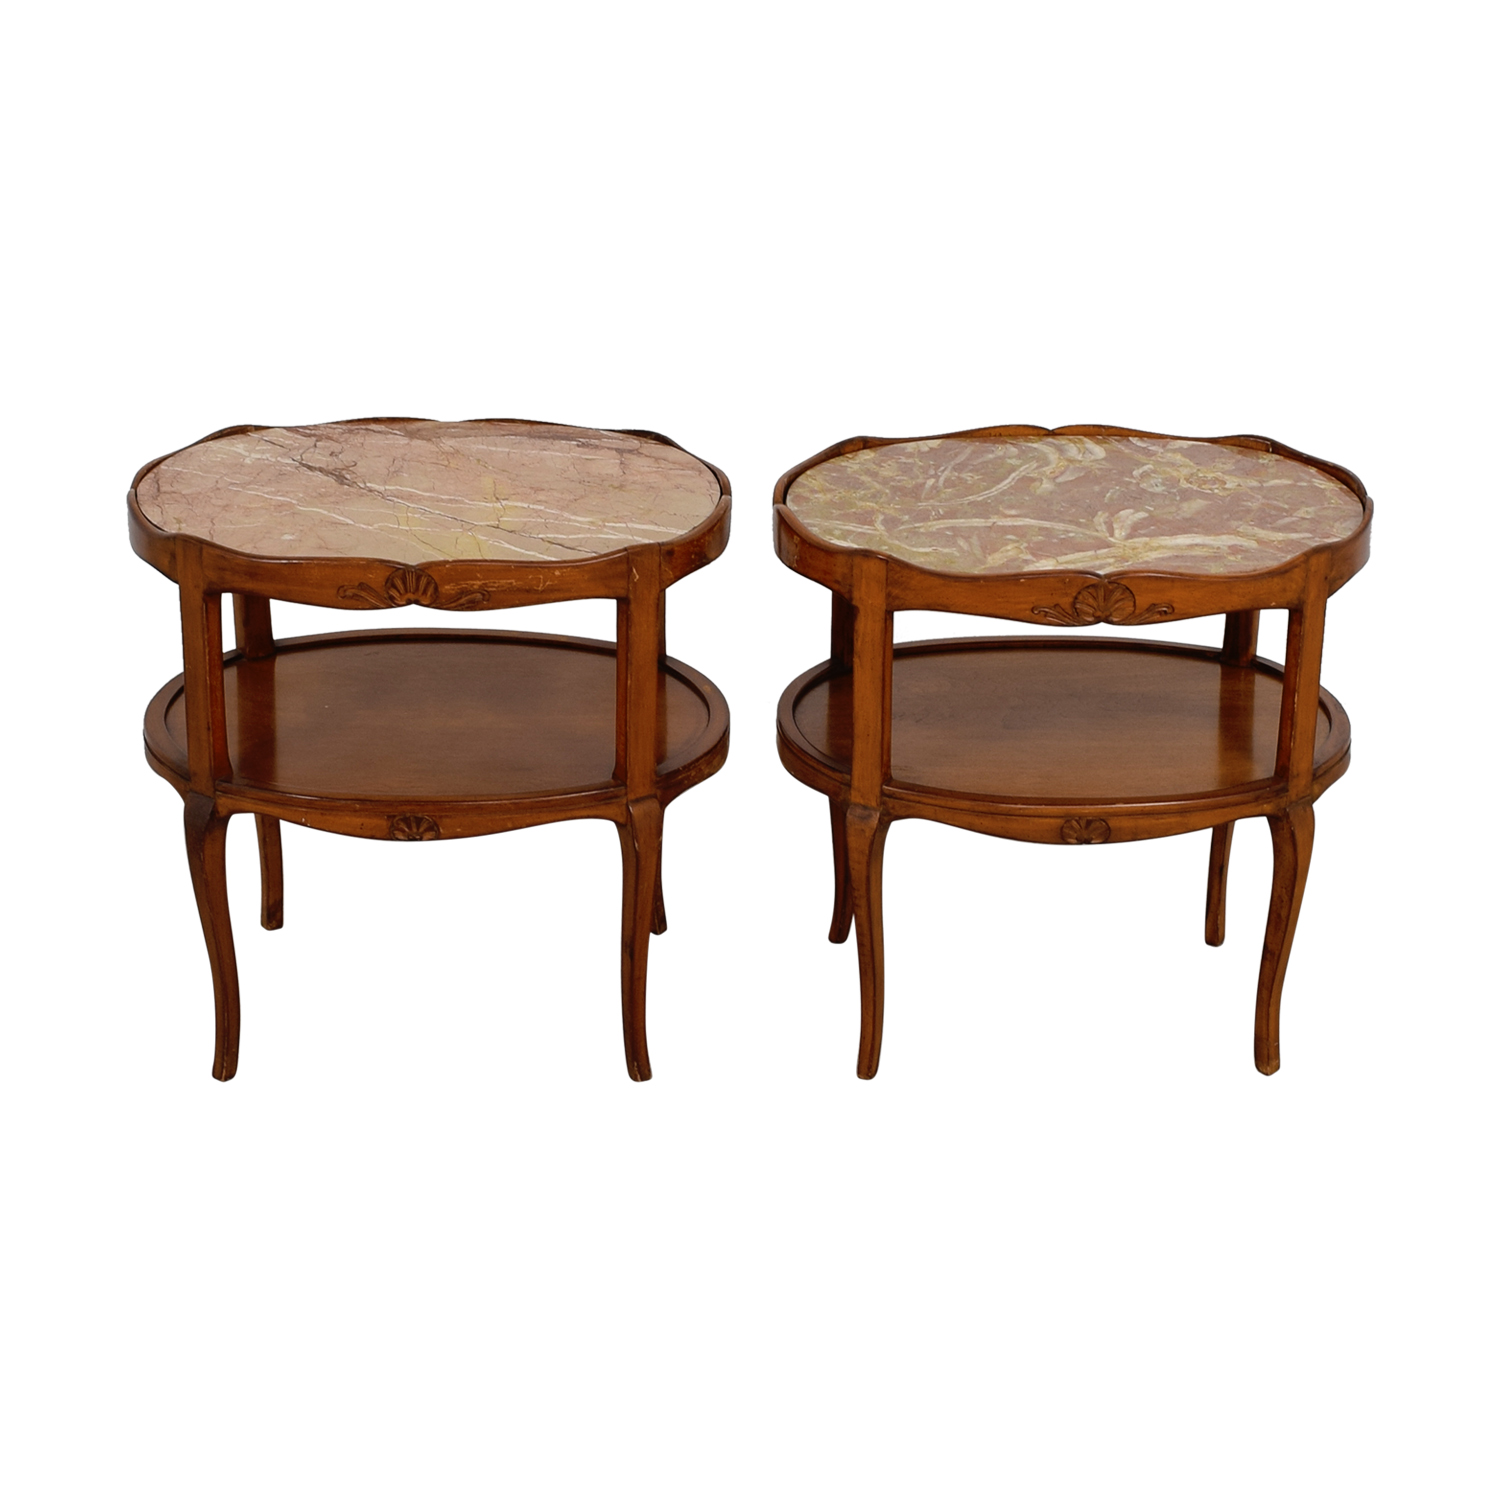 oval side table. Buy Marble Topped Cherry Wood Oval Side Tables Online Table